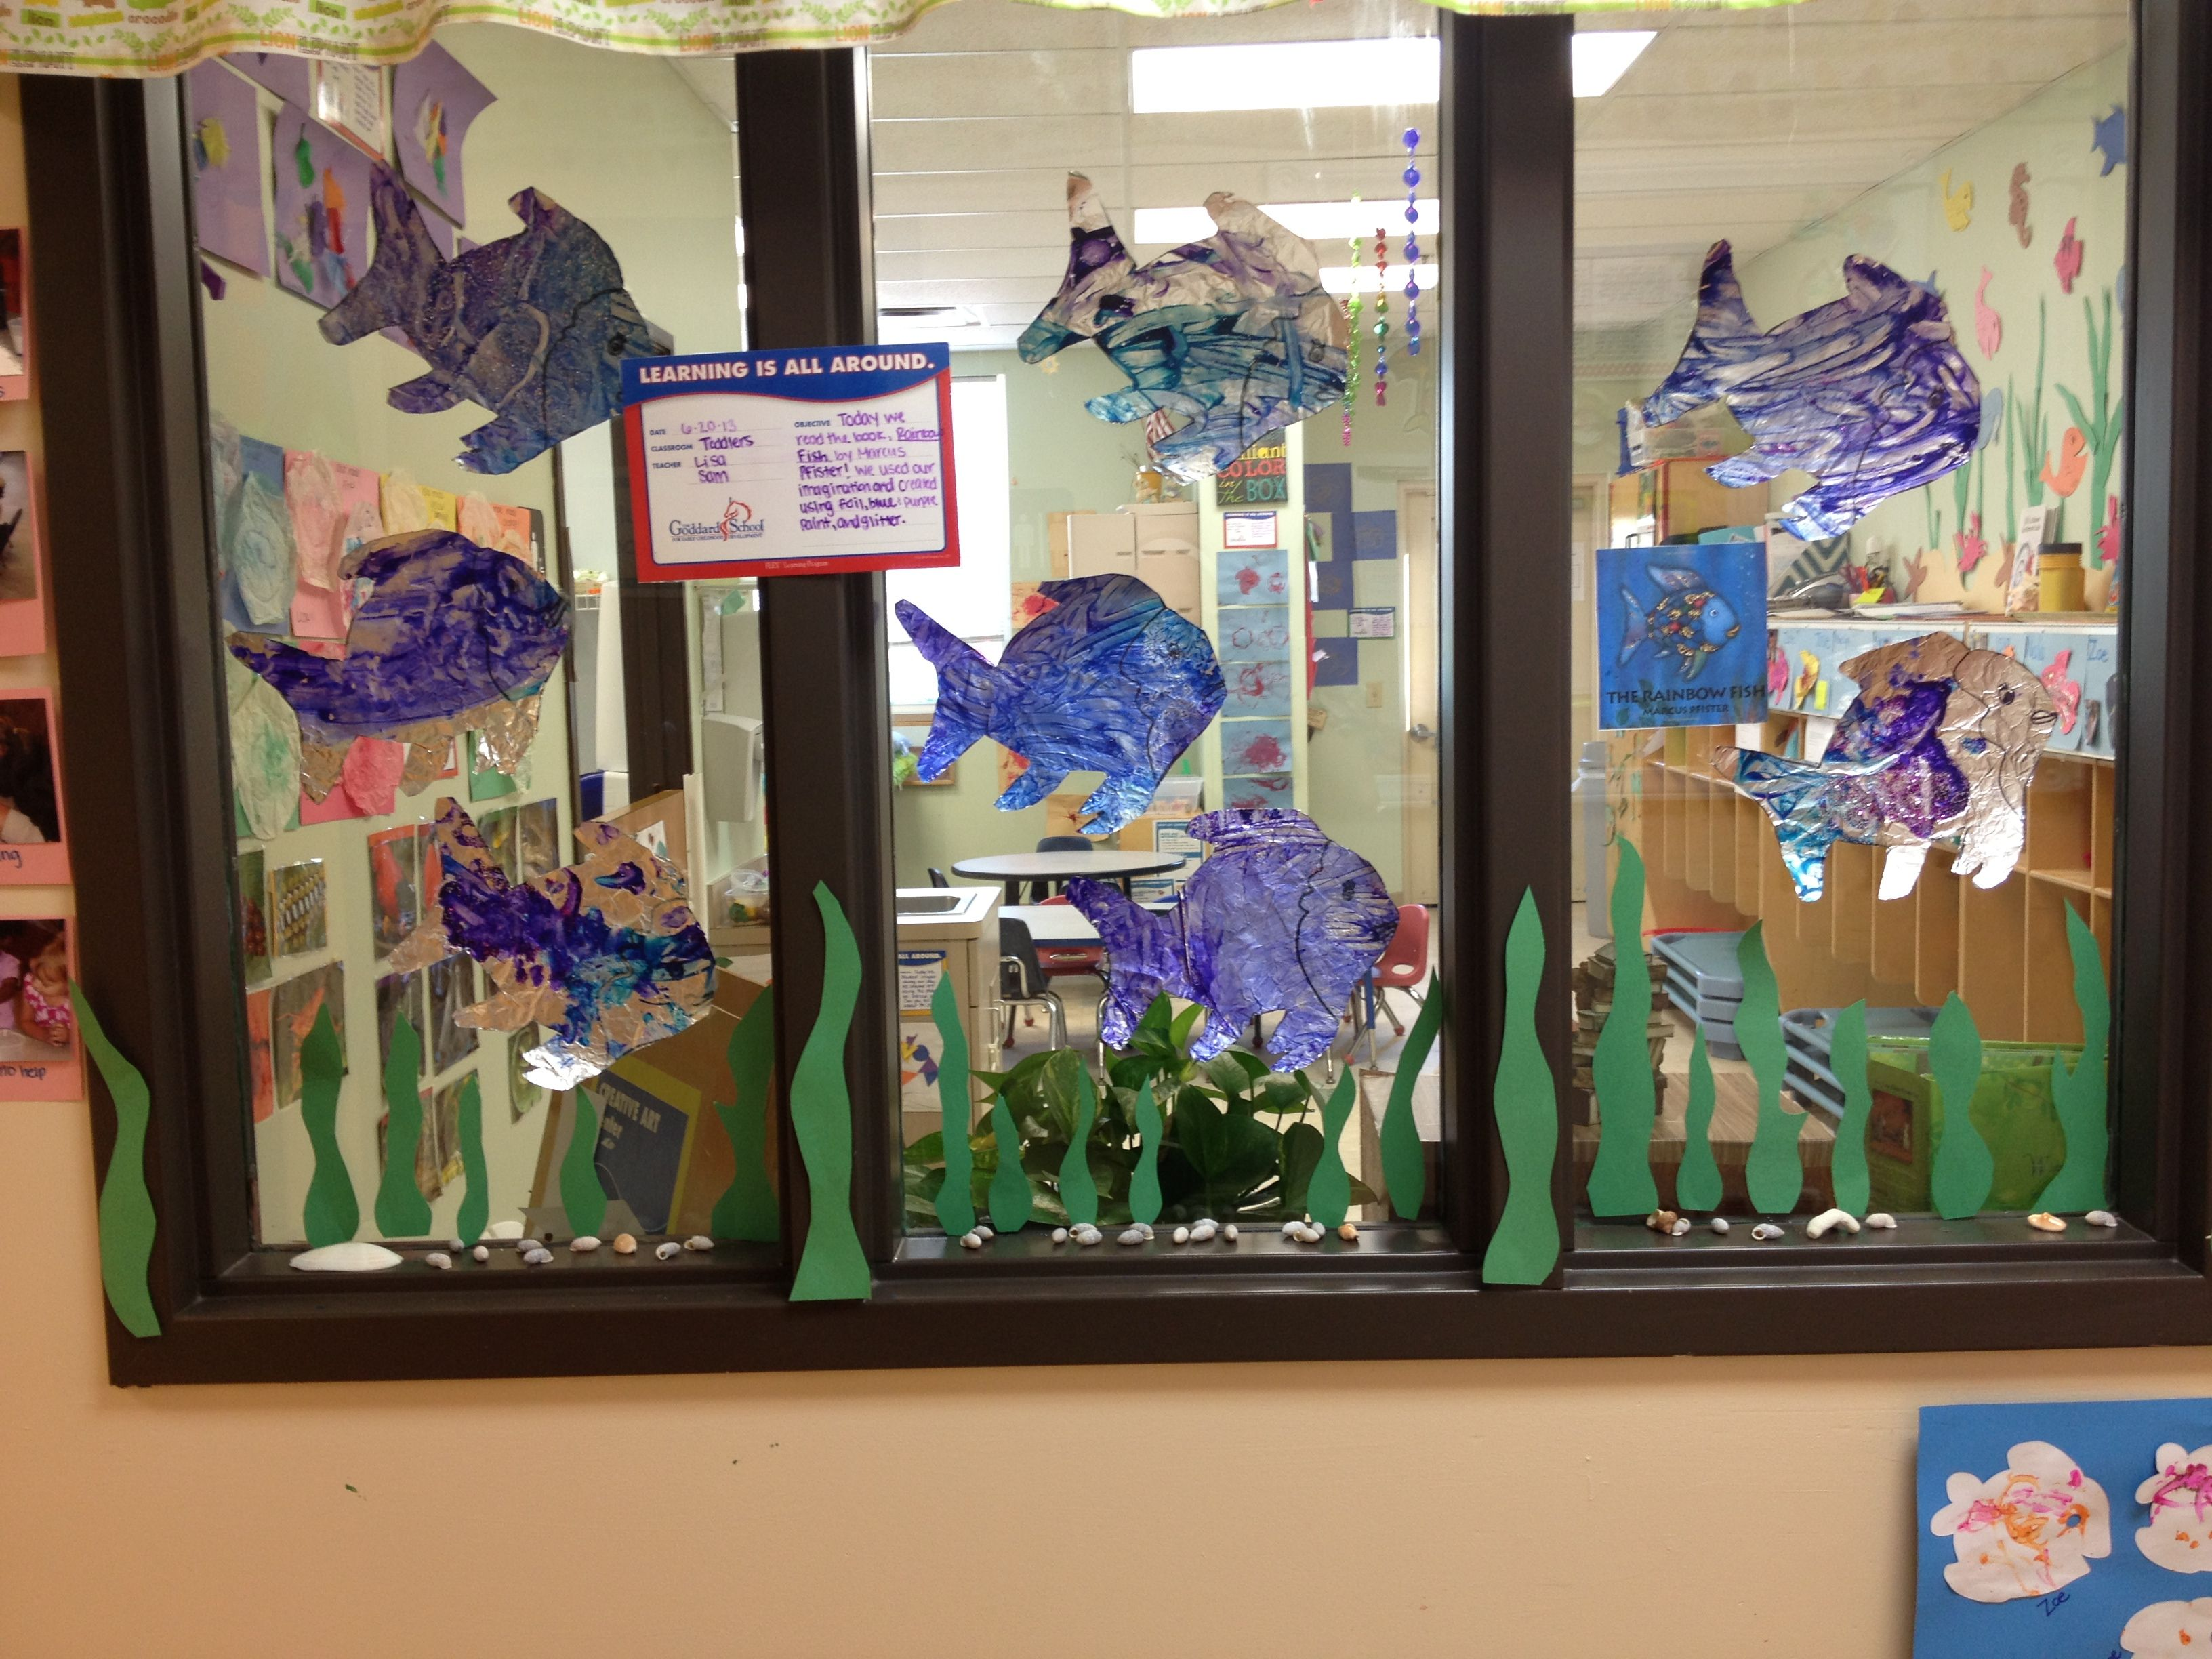 Classroom Decoration Window : I decorated my classroom window for our ocean theme had